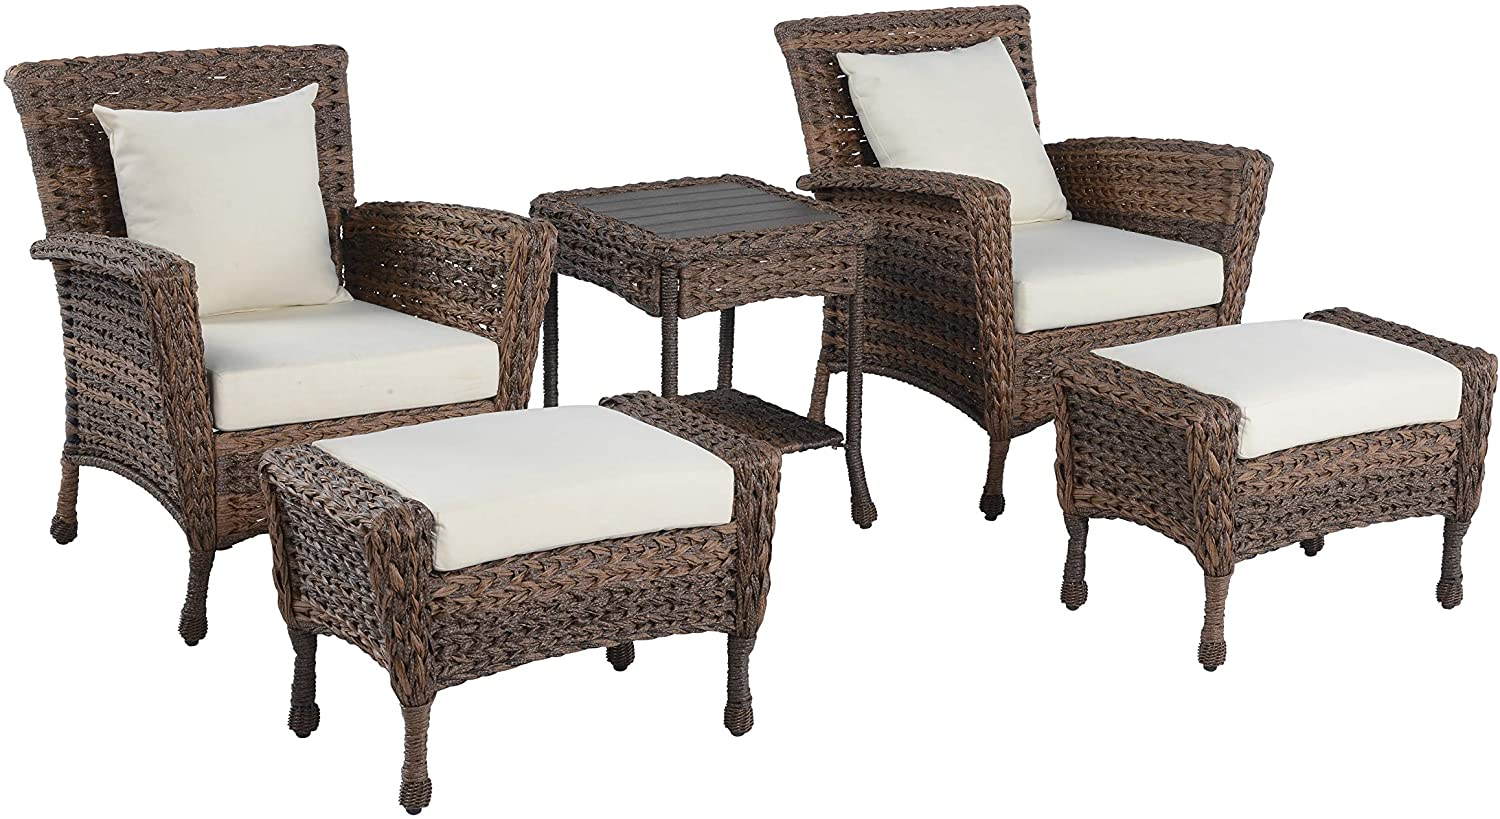 W Unlimited Rustic Collection Outdoor Garden Patio 5-PC Bistro Furniture Set, Brown